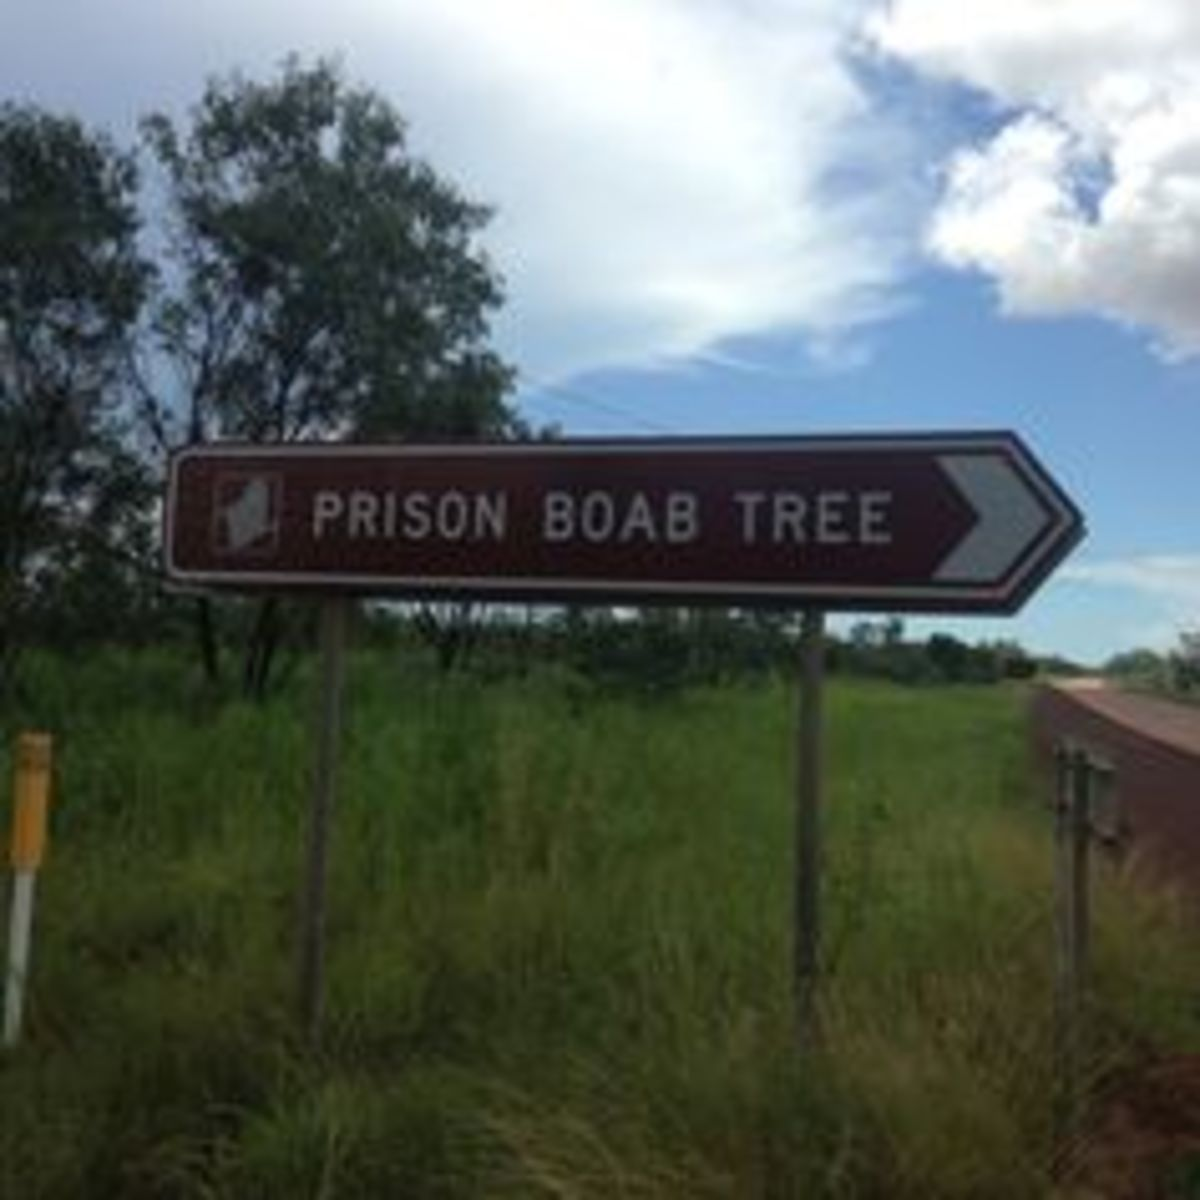 A road sign pointing to the tree.